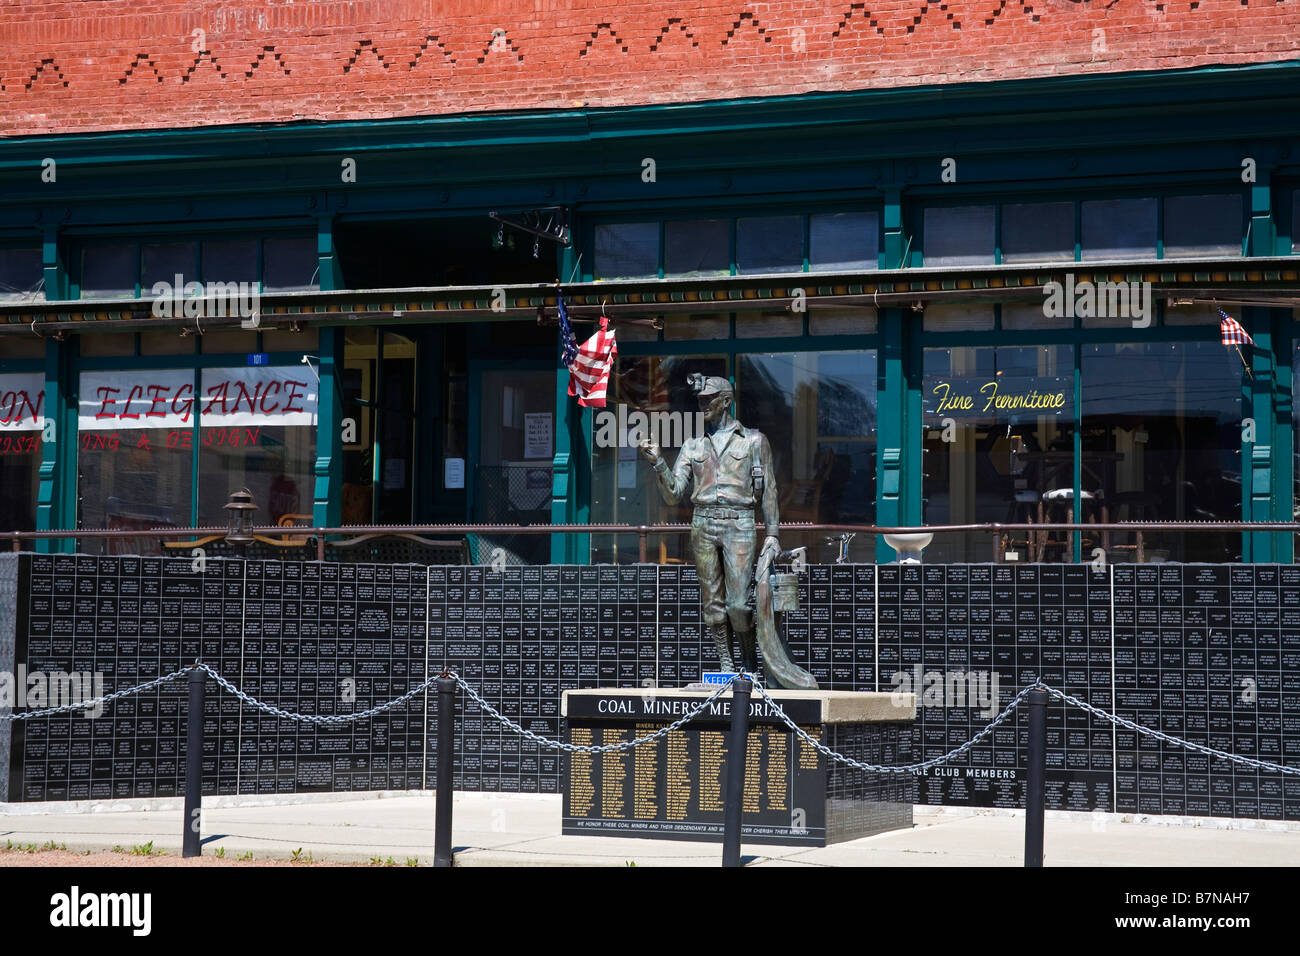 Coal Miners Memorial Historic Roslyn Washington State USA - Stock Image